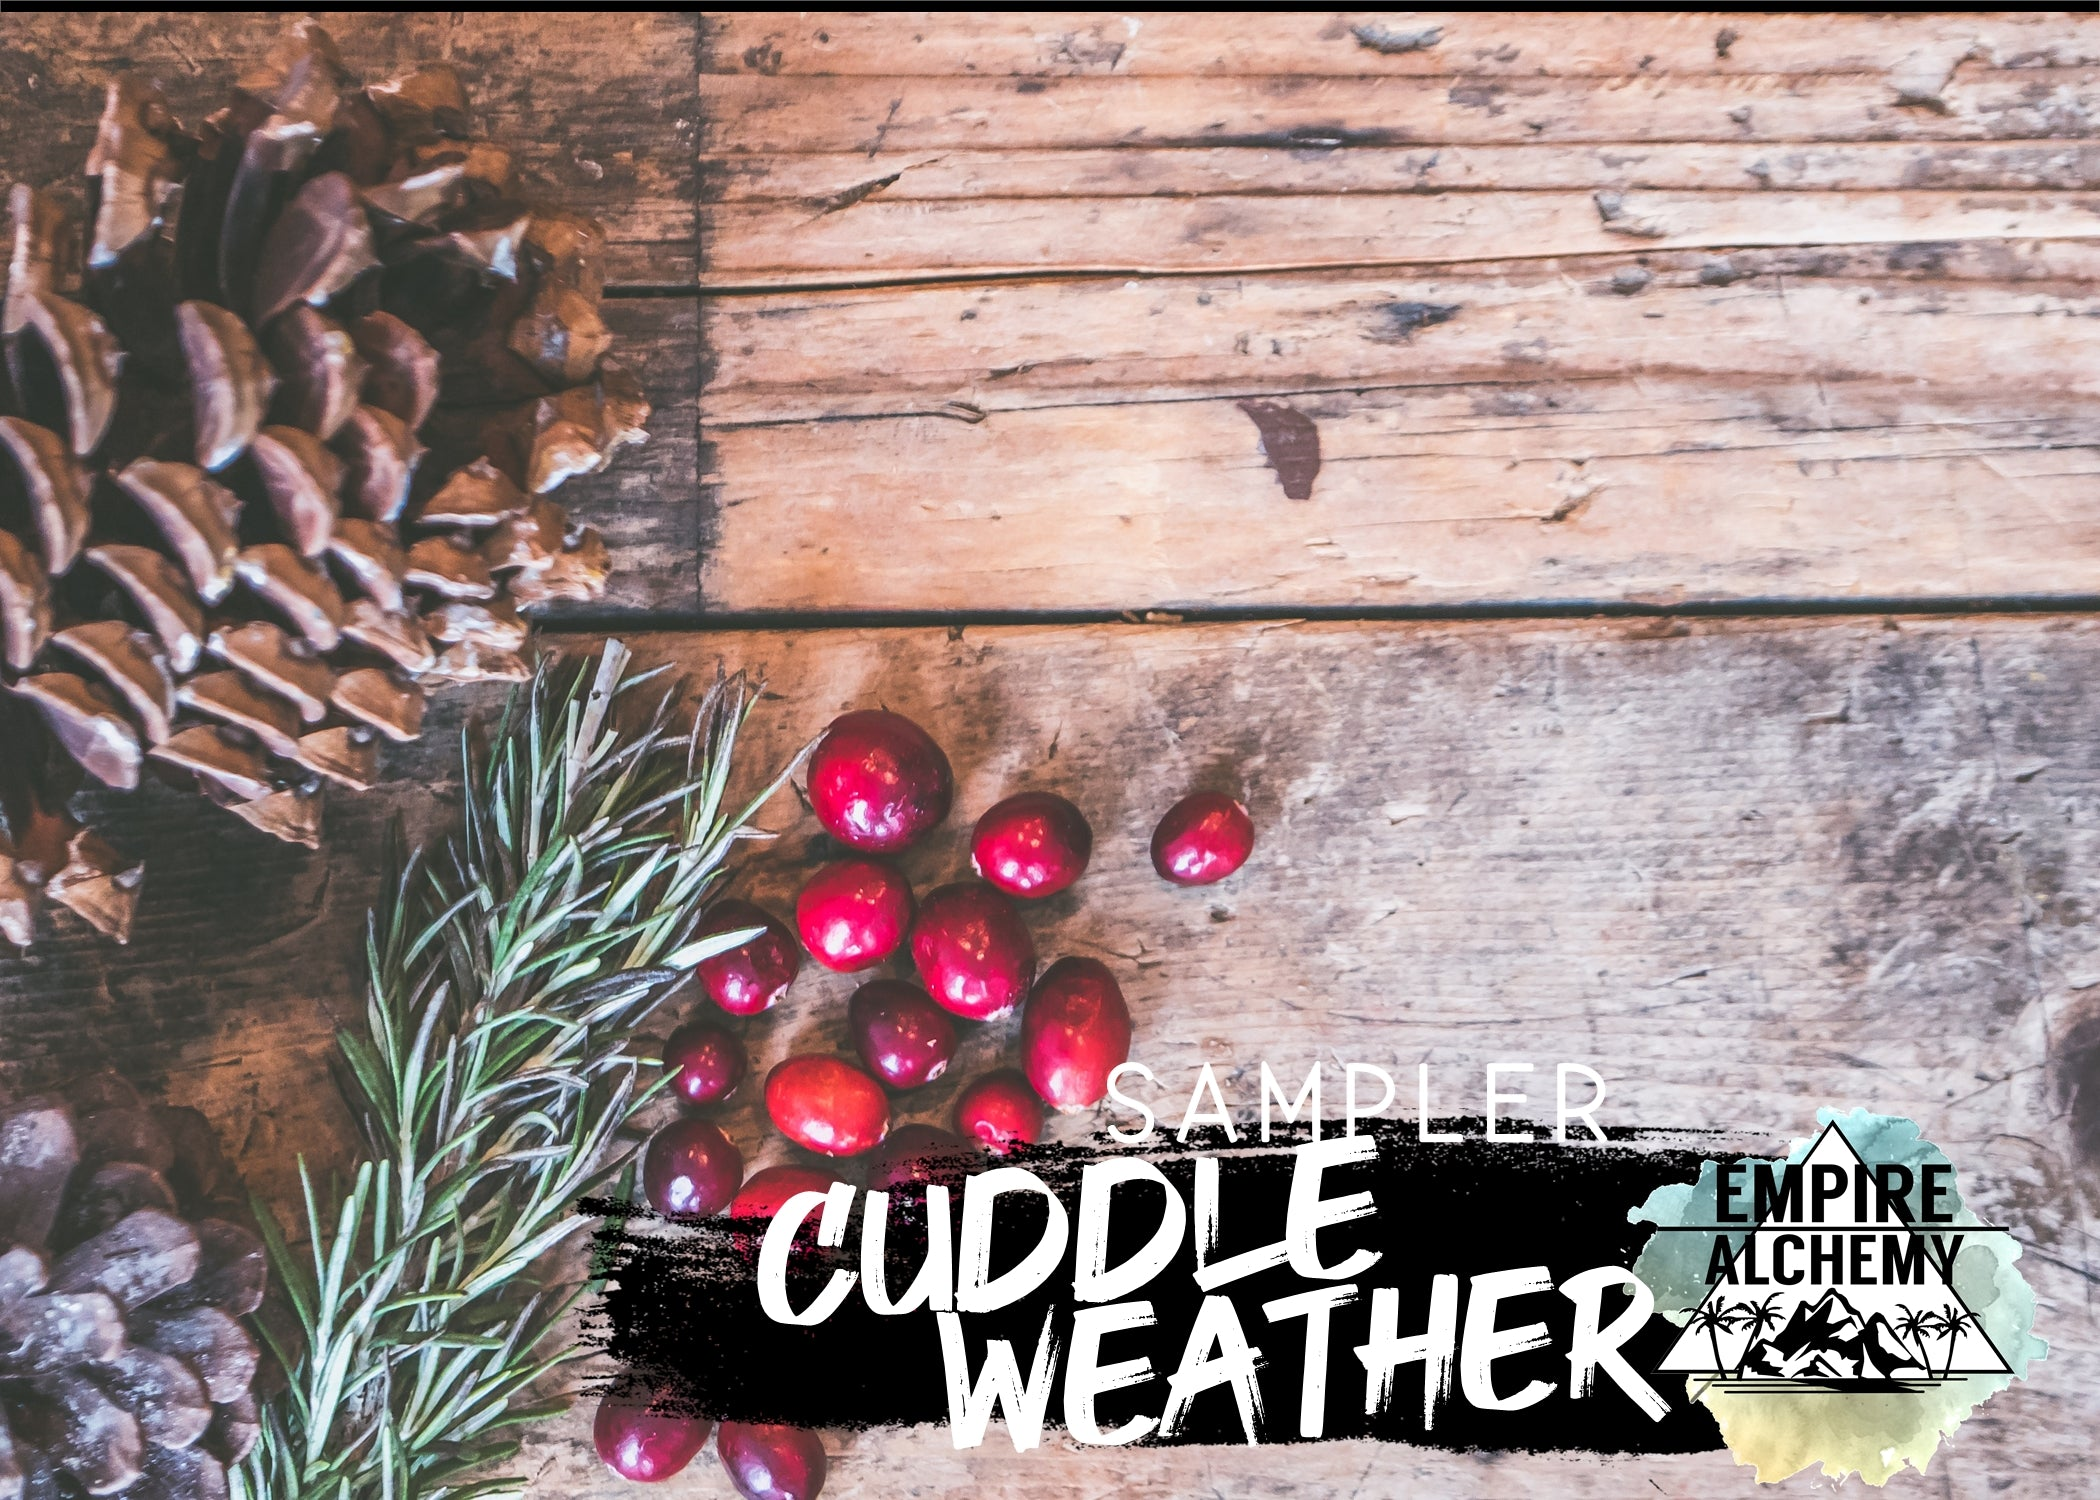 CUDDLE WEATHER SAMPLER 11 oz Ready-To-Ship